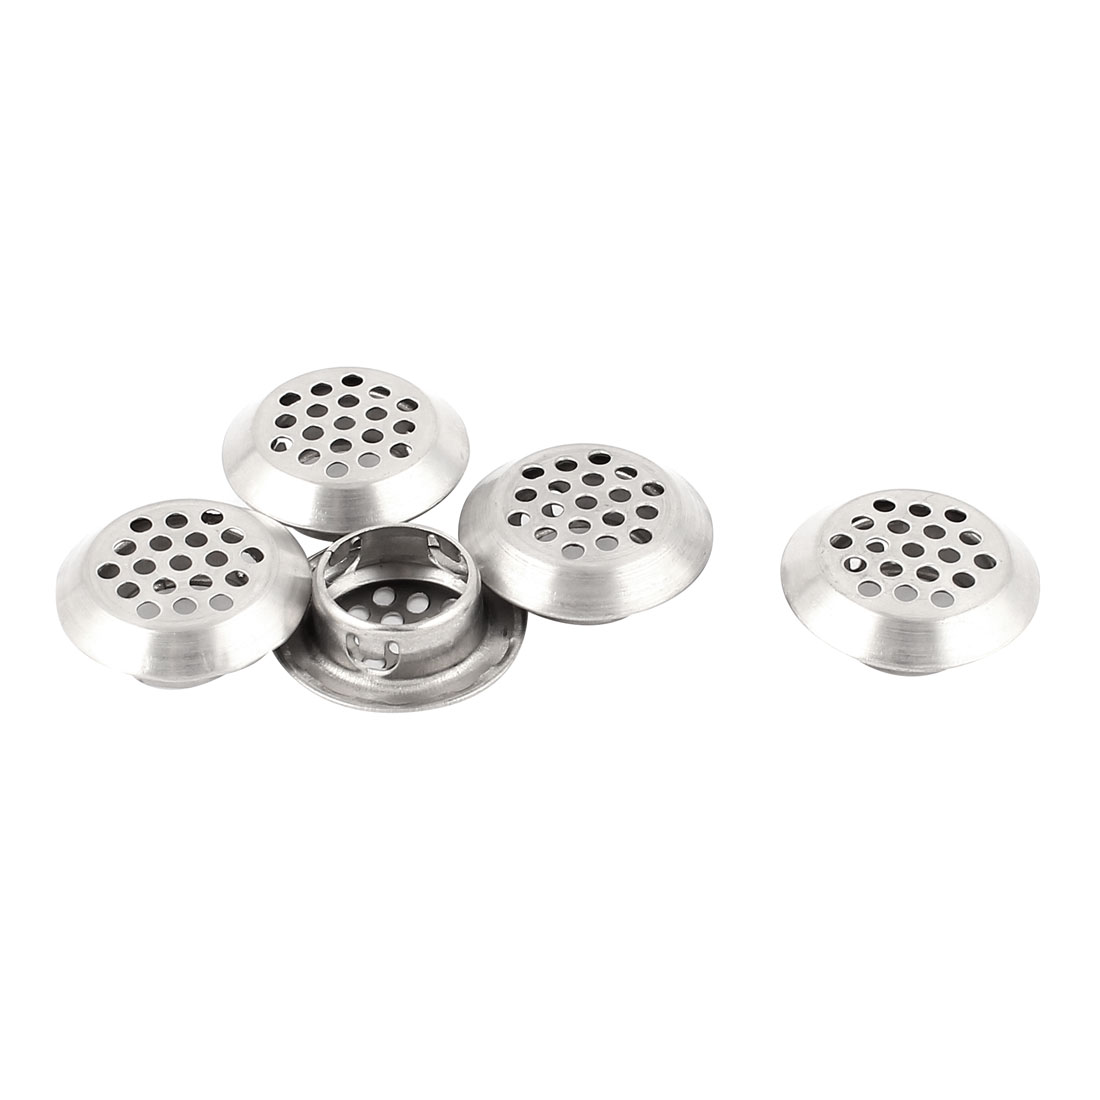 5Pcs 19mm Bottom Dia Round Stainless Steel Perforated Mesh Air Vents Louvers